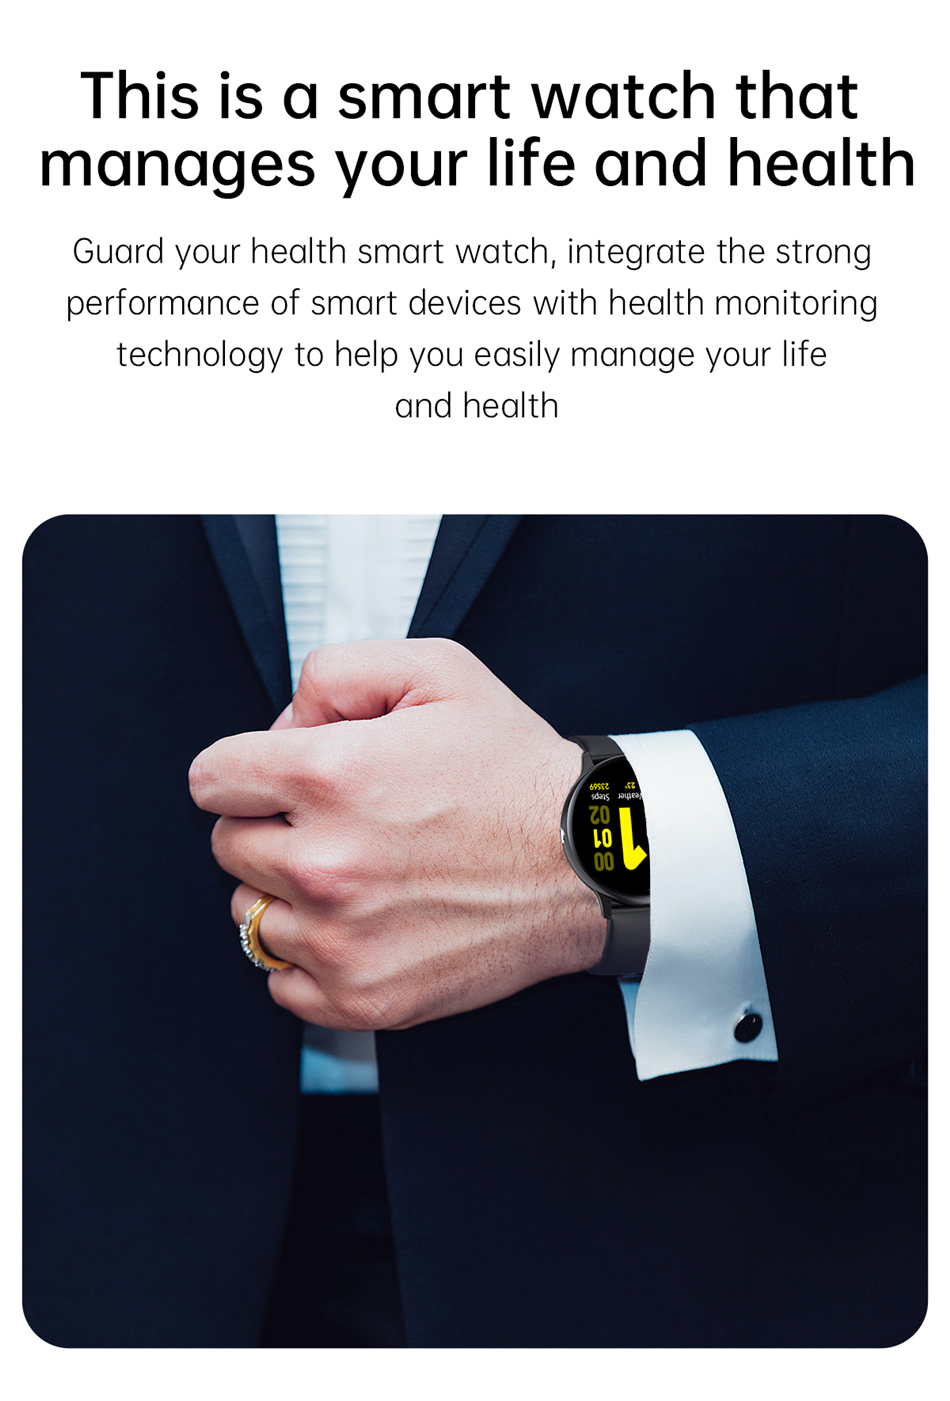 H073f88a37d3949aba8171c15a19c10b6n 2021 Bluetooth Call watch Smart watch For men And women Full touch fitness tracker Blood pressure Smart clock ladies Smart watch